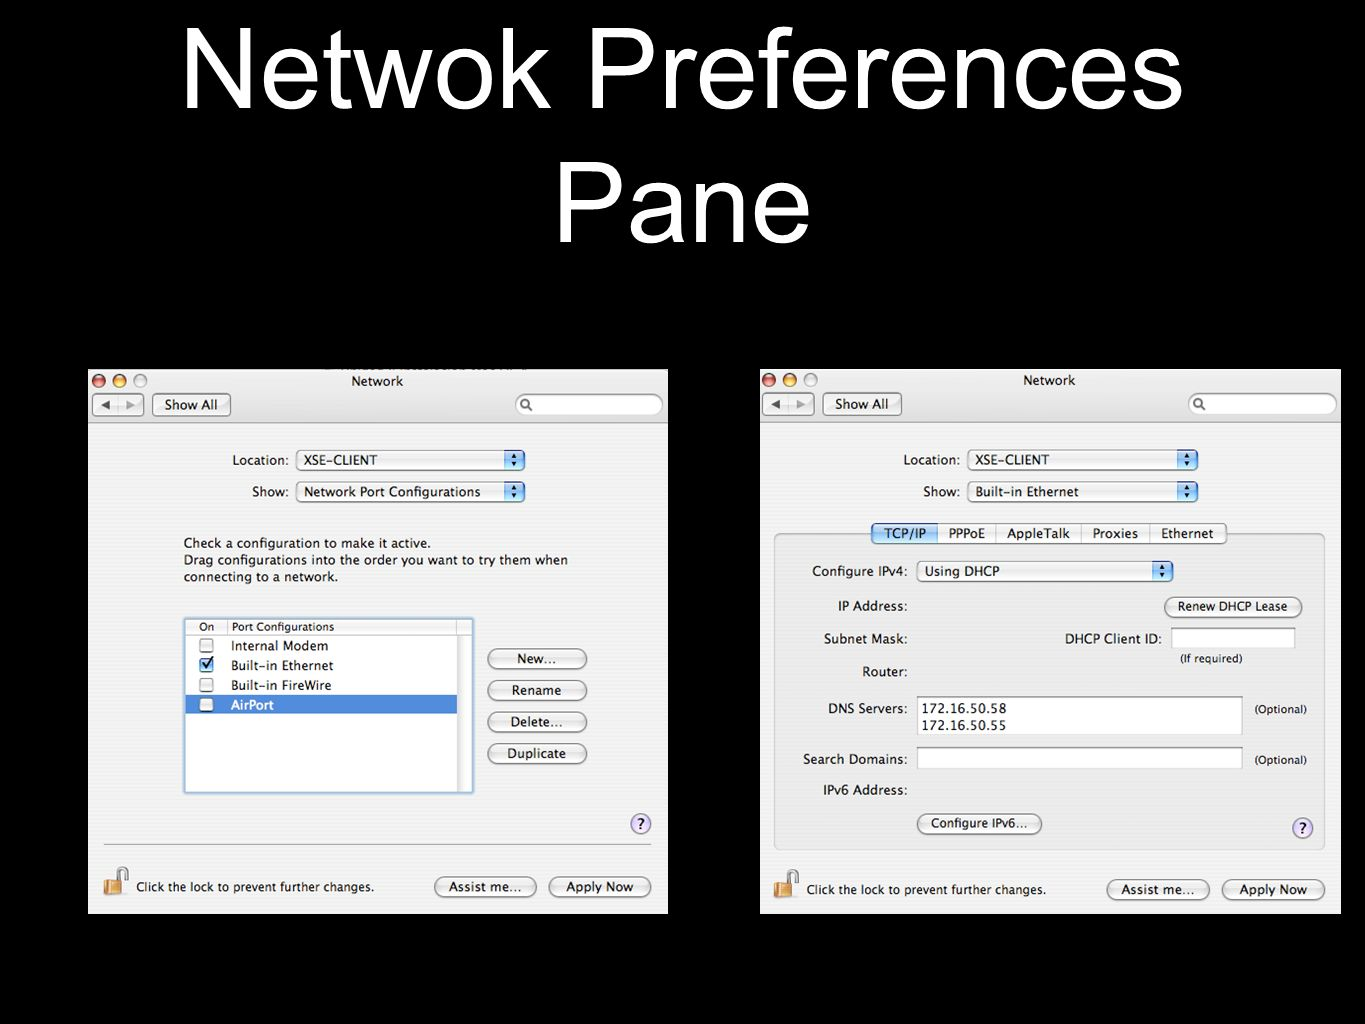 Netwok Preferences Pane